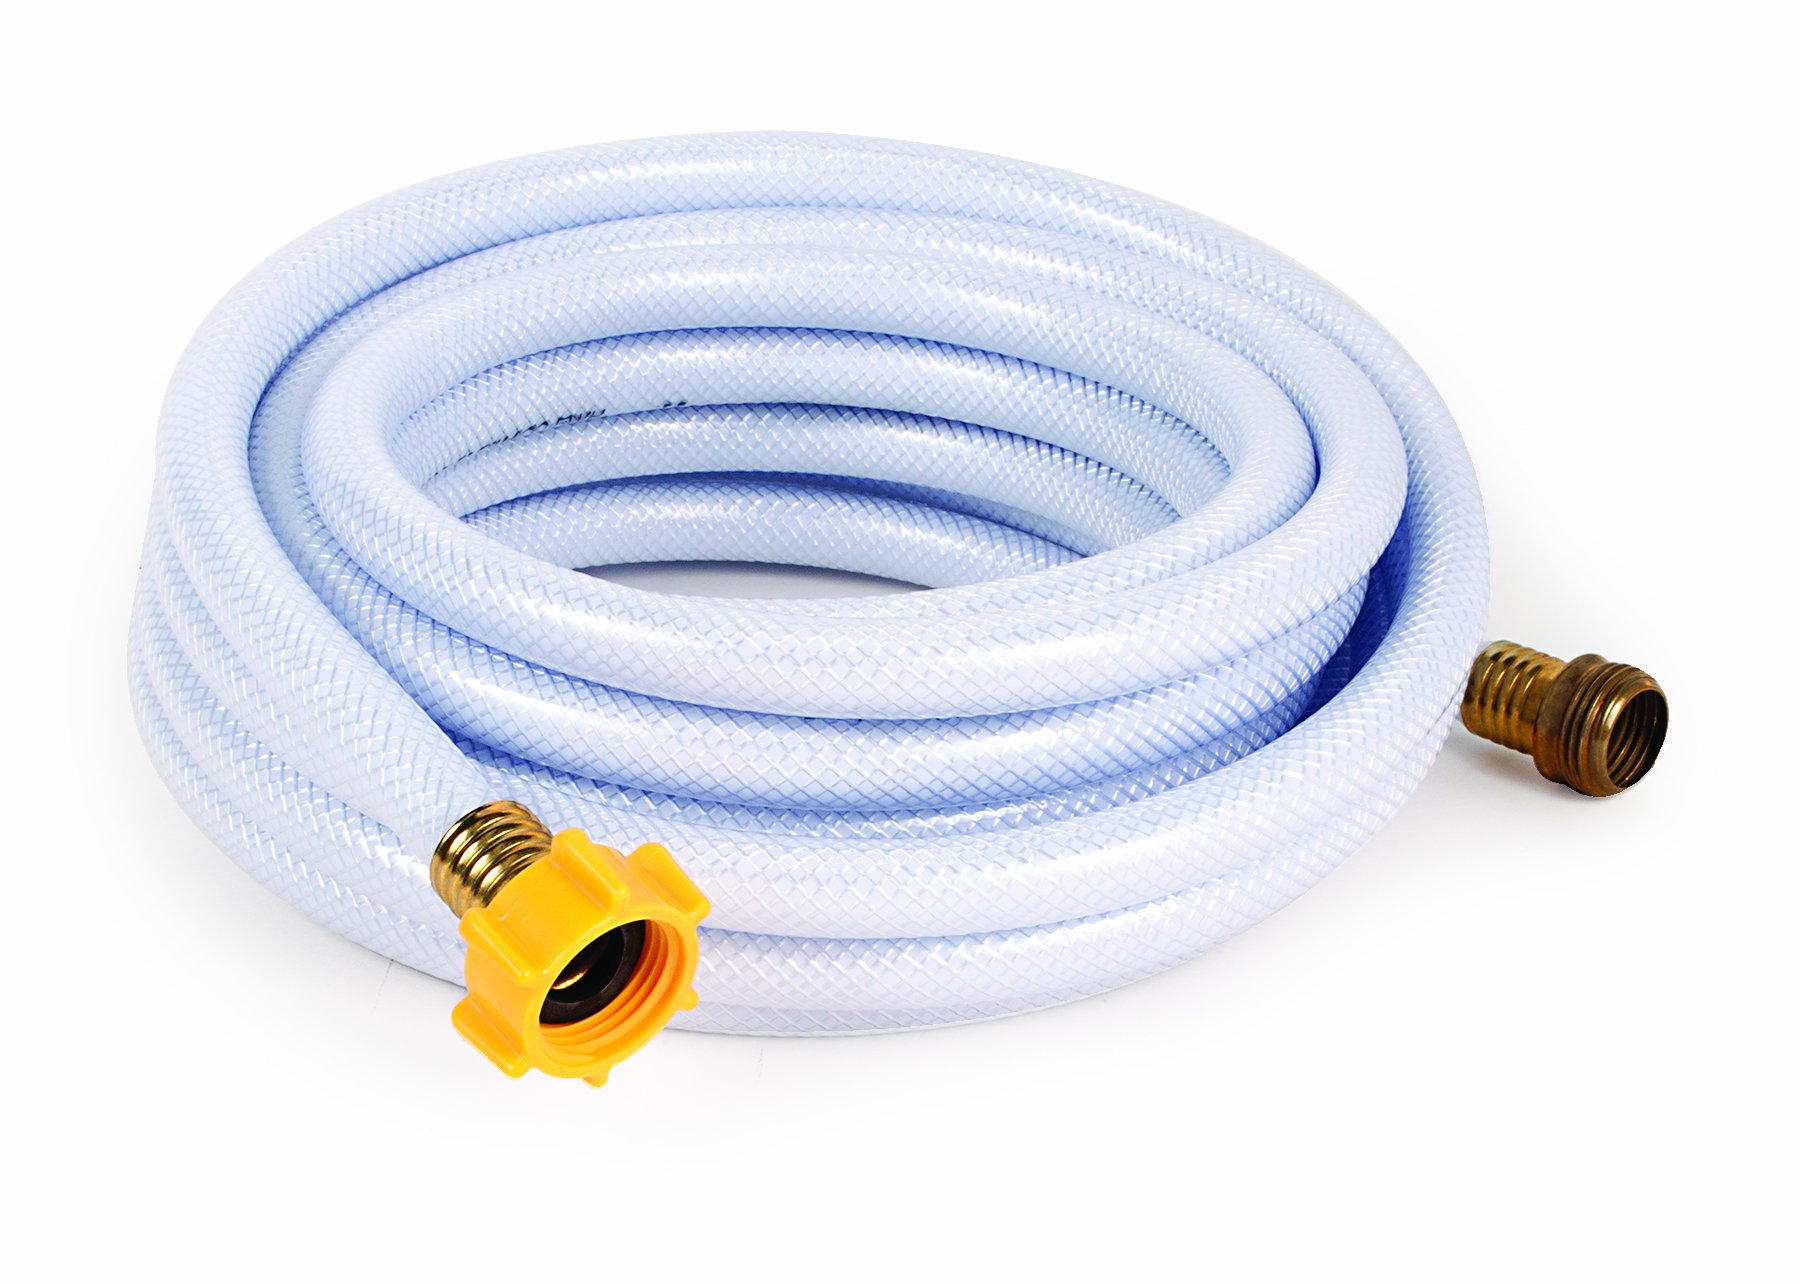 "Camco TastePURE Drinking Water Hose, Lead and BPA Free, Reinforced for Maximum Kink Resistance (5/8""Inner Diameter x 25 Feet)"